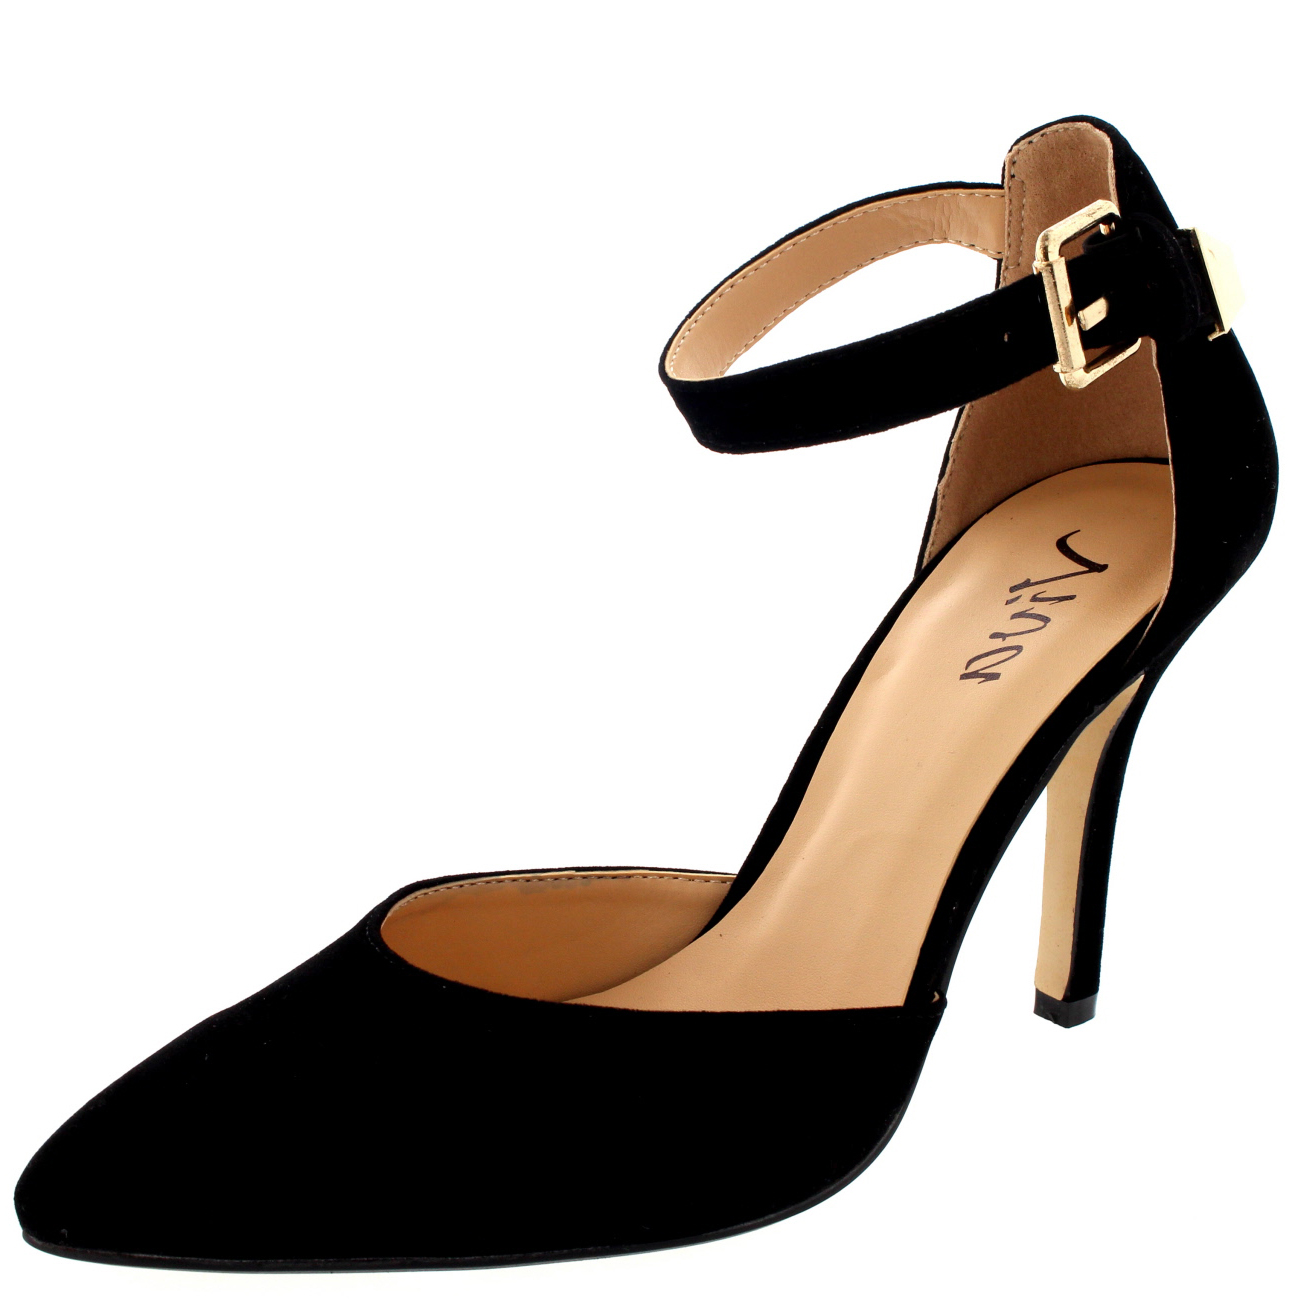 Black Suede Ankle Strap Court Shoes